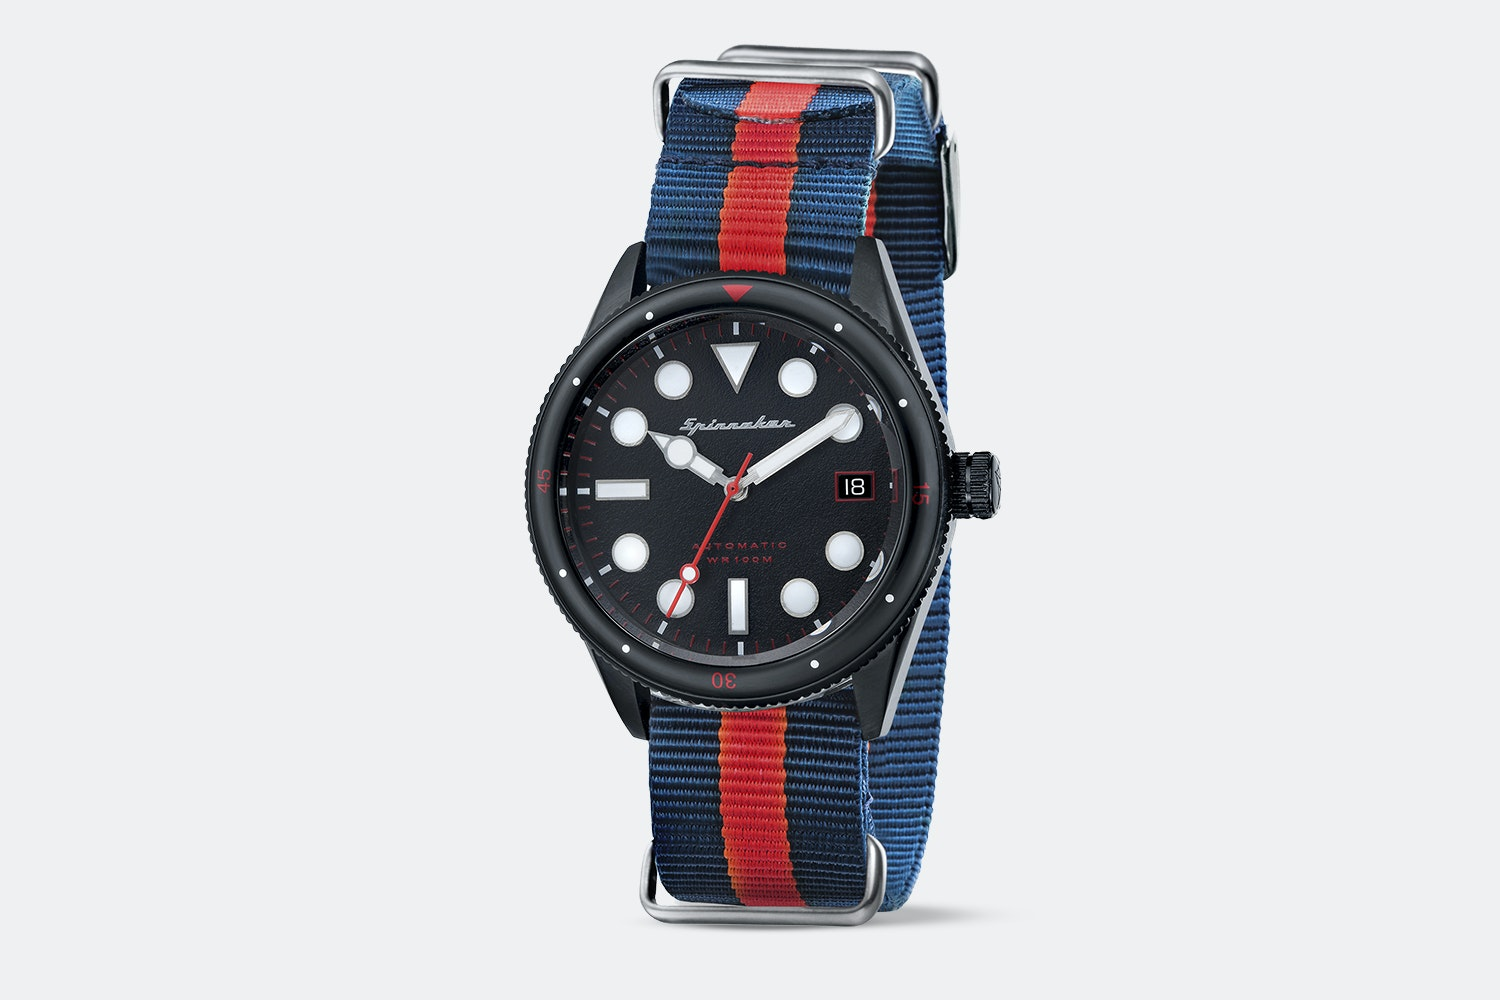 Spinnaker Cahill Midsize Automatic Watch